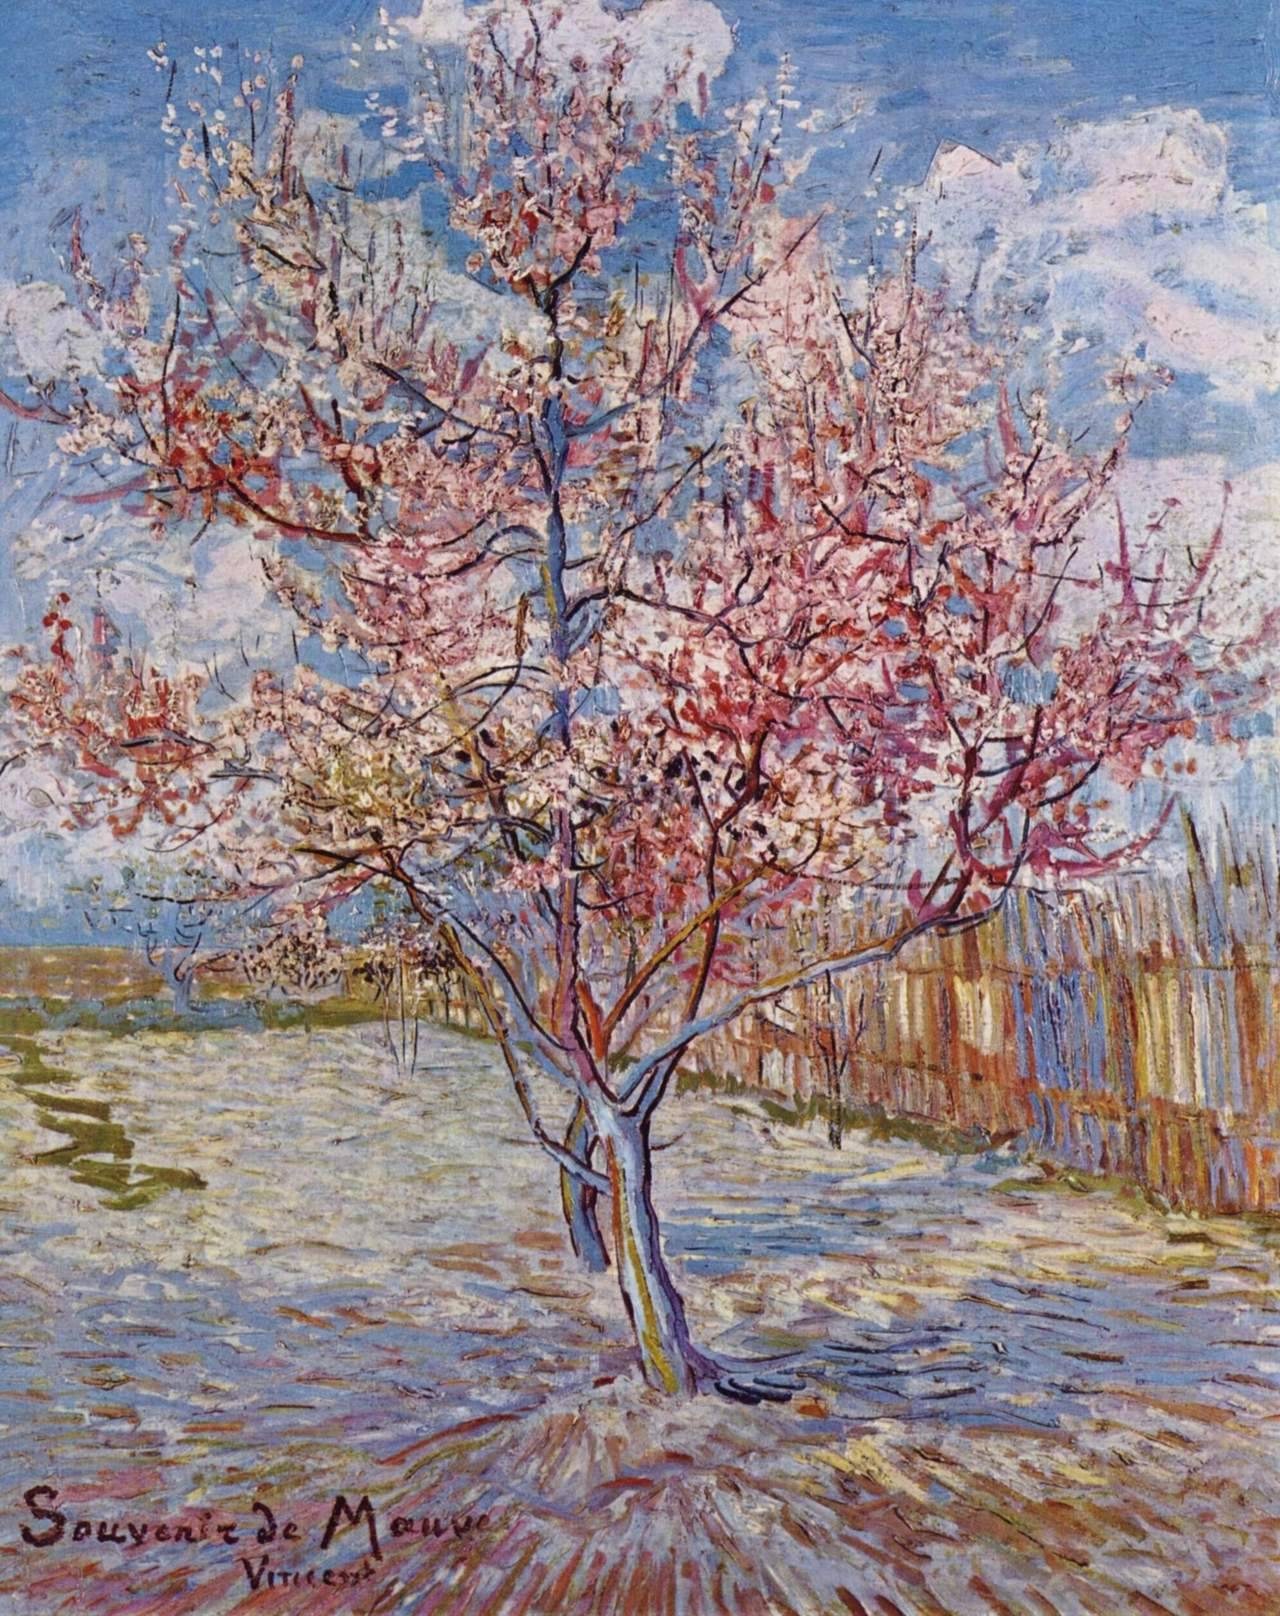 yayitscaroline:  Peach Trees in Blossom (Souvenir de Mauve) Vincent van Gogh 1888 Impressionism Oil on canvas. Müller Museum (Otterlo, Netherlands)